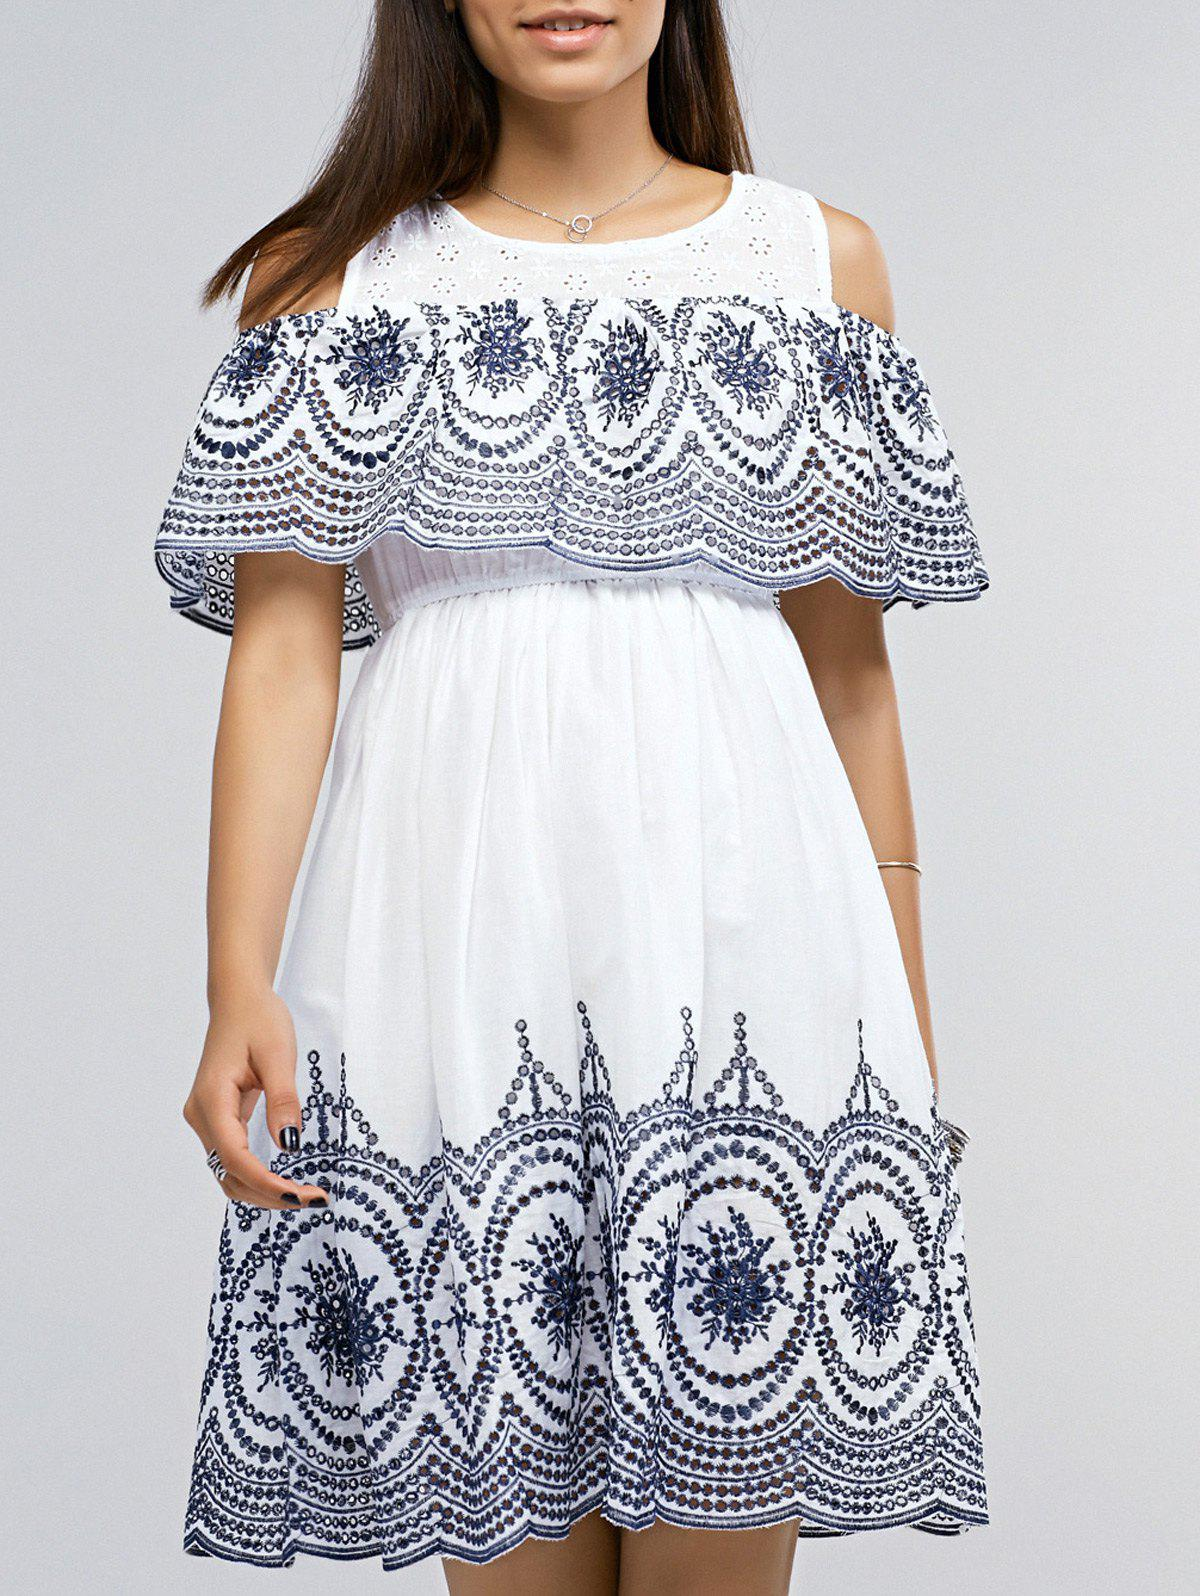 Ethnic Jewel Neck Cold Shoulder Embroidered Dress For Women - WHITE ONE SIZE(FIT SIZE XS TO M)